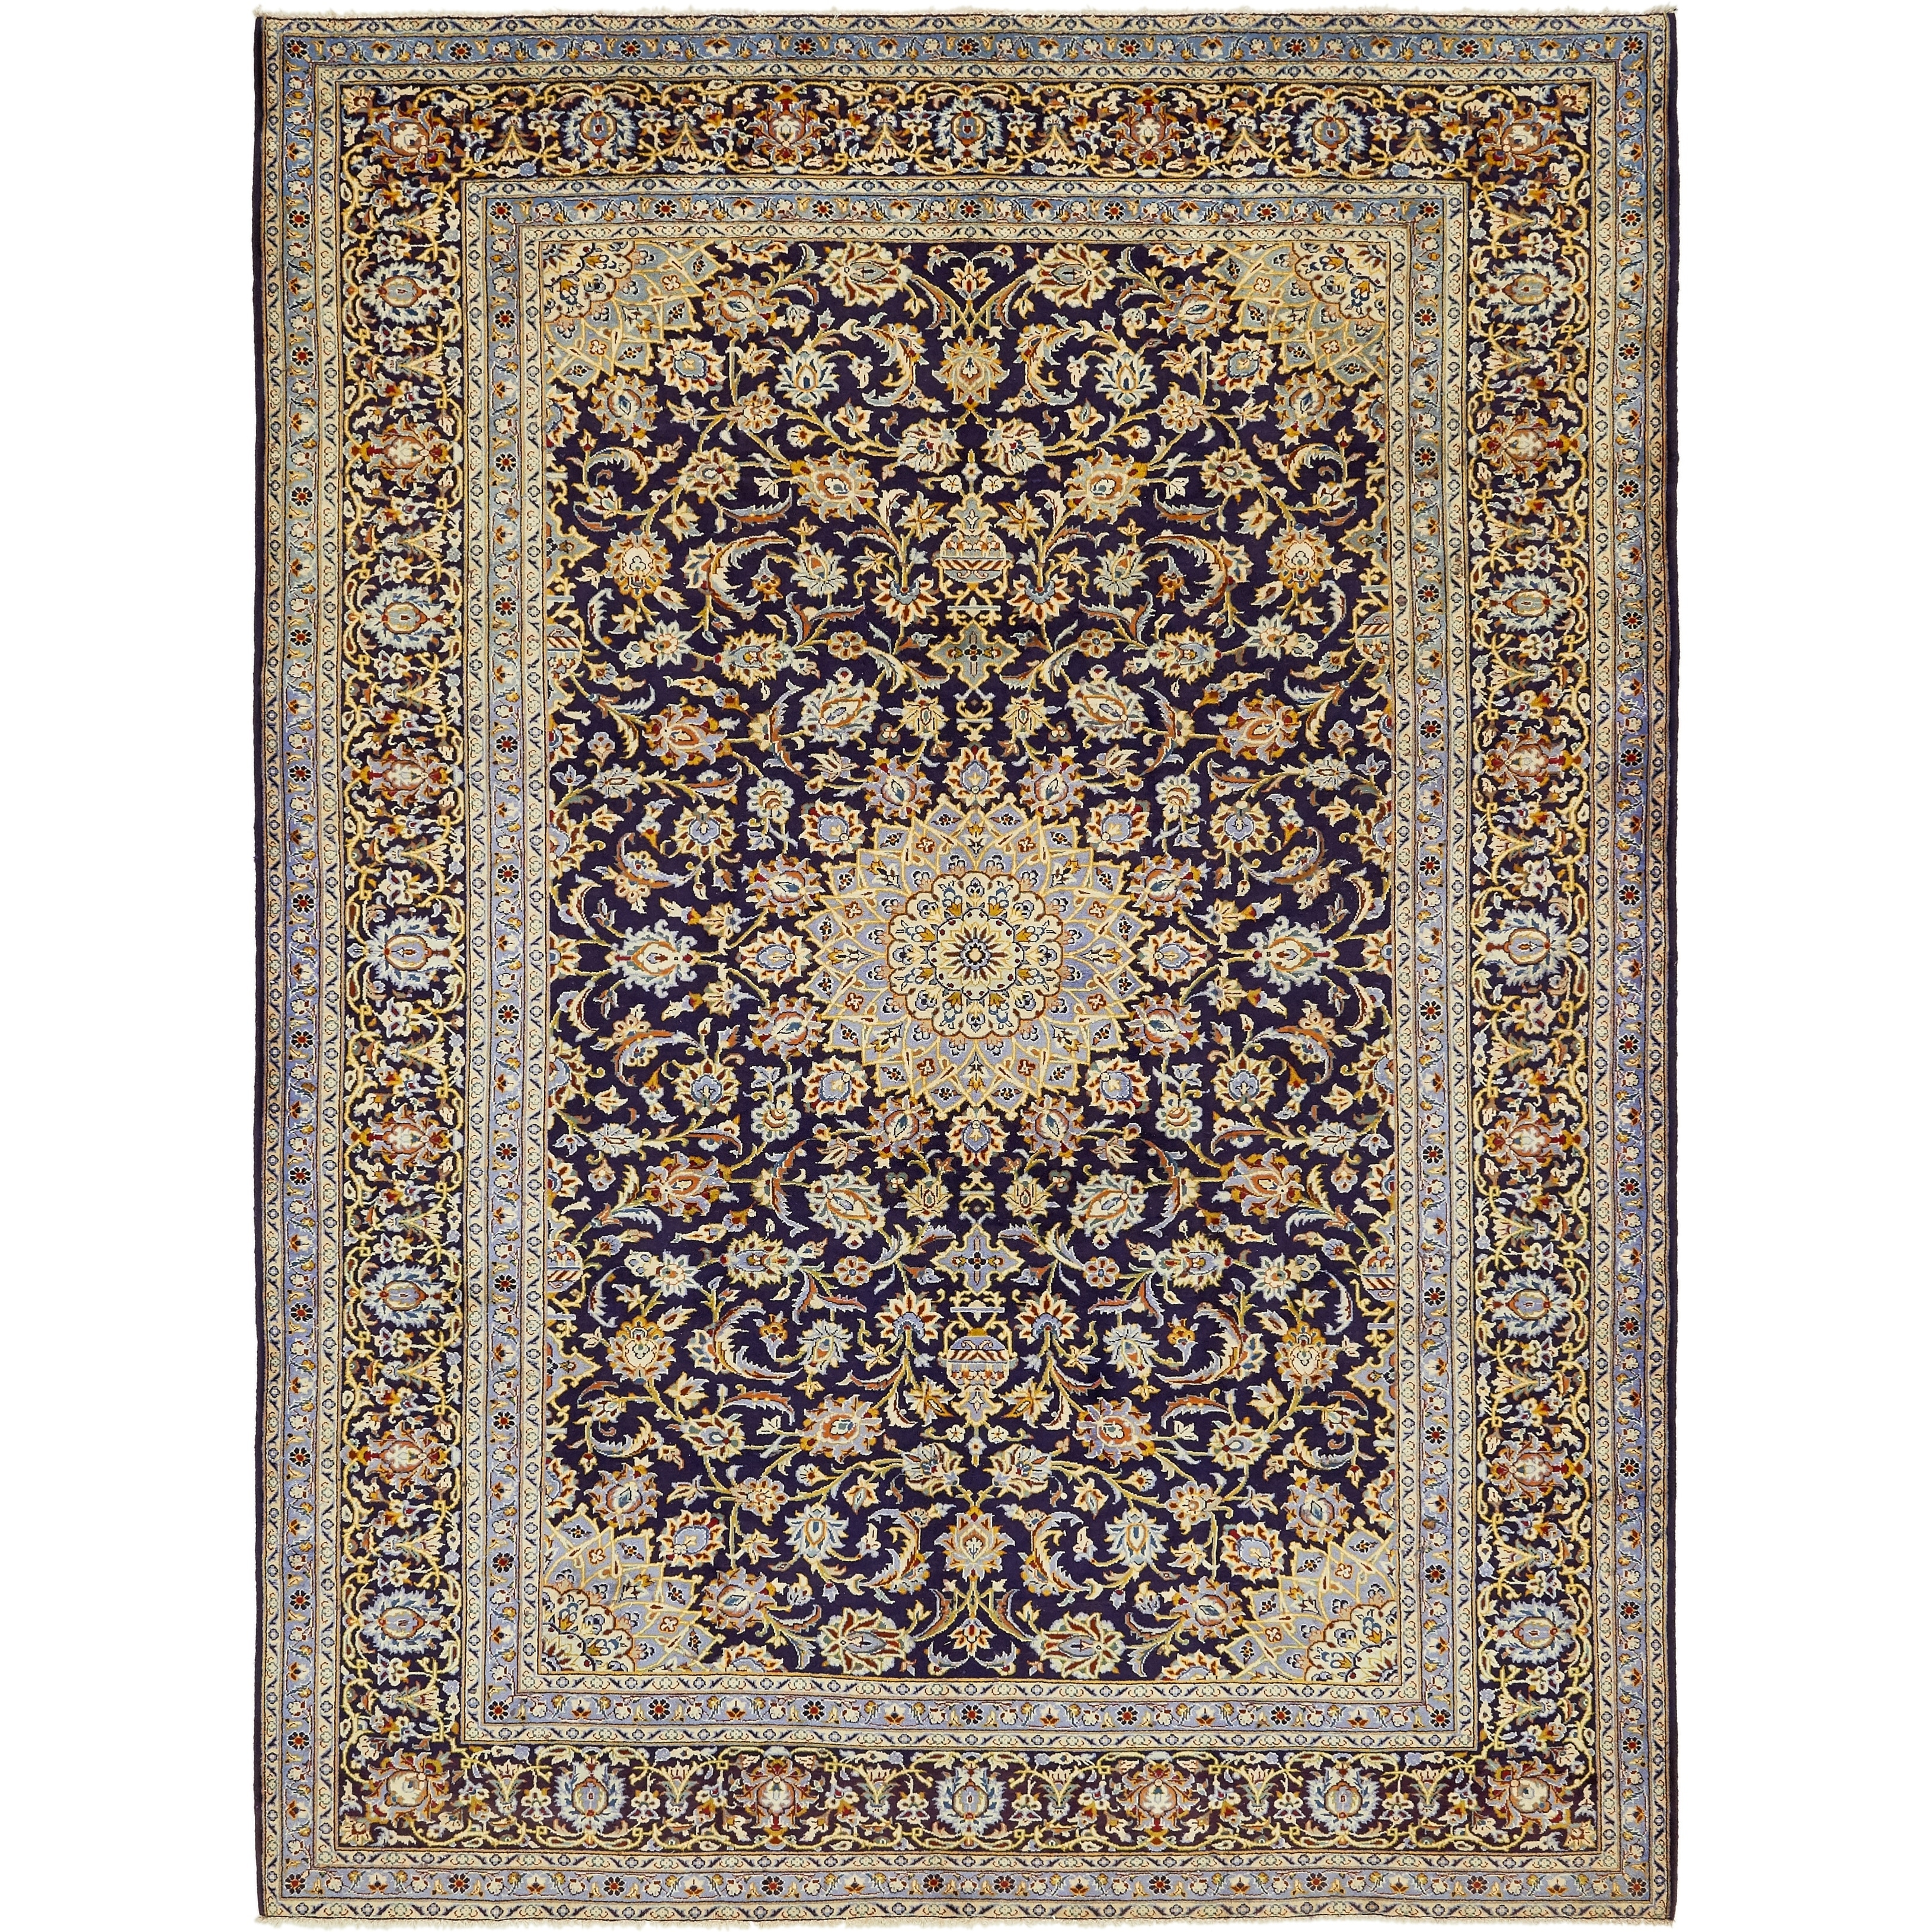 Hand Knotted Kashan Semi Antique Wool Area Rug - 9 x 12 (Navy blue - 9 x 12)